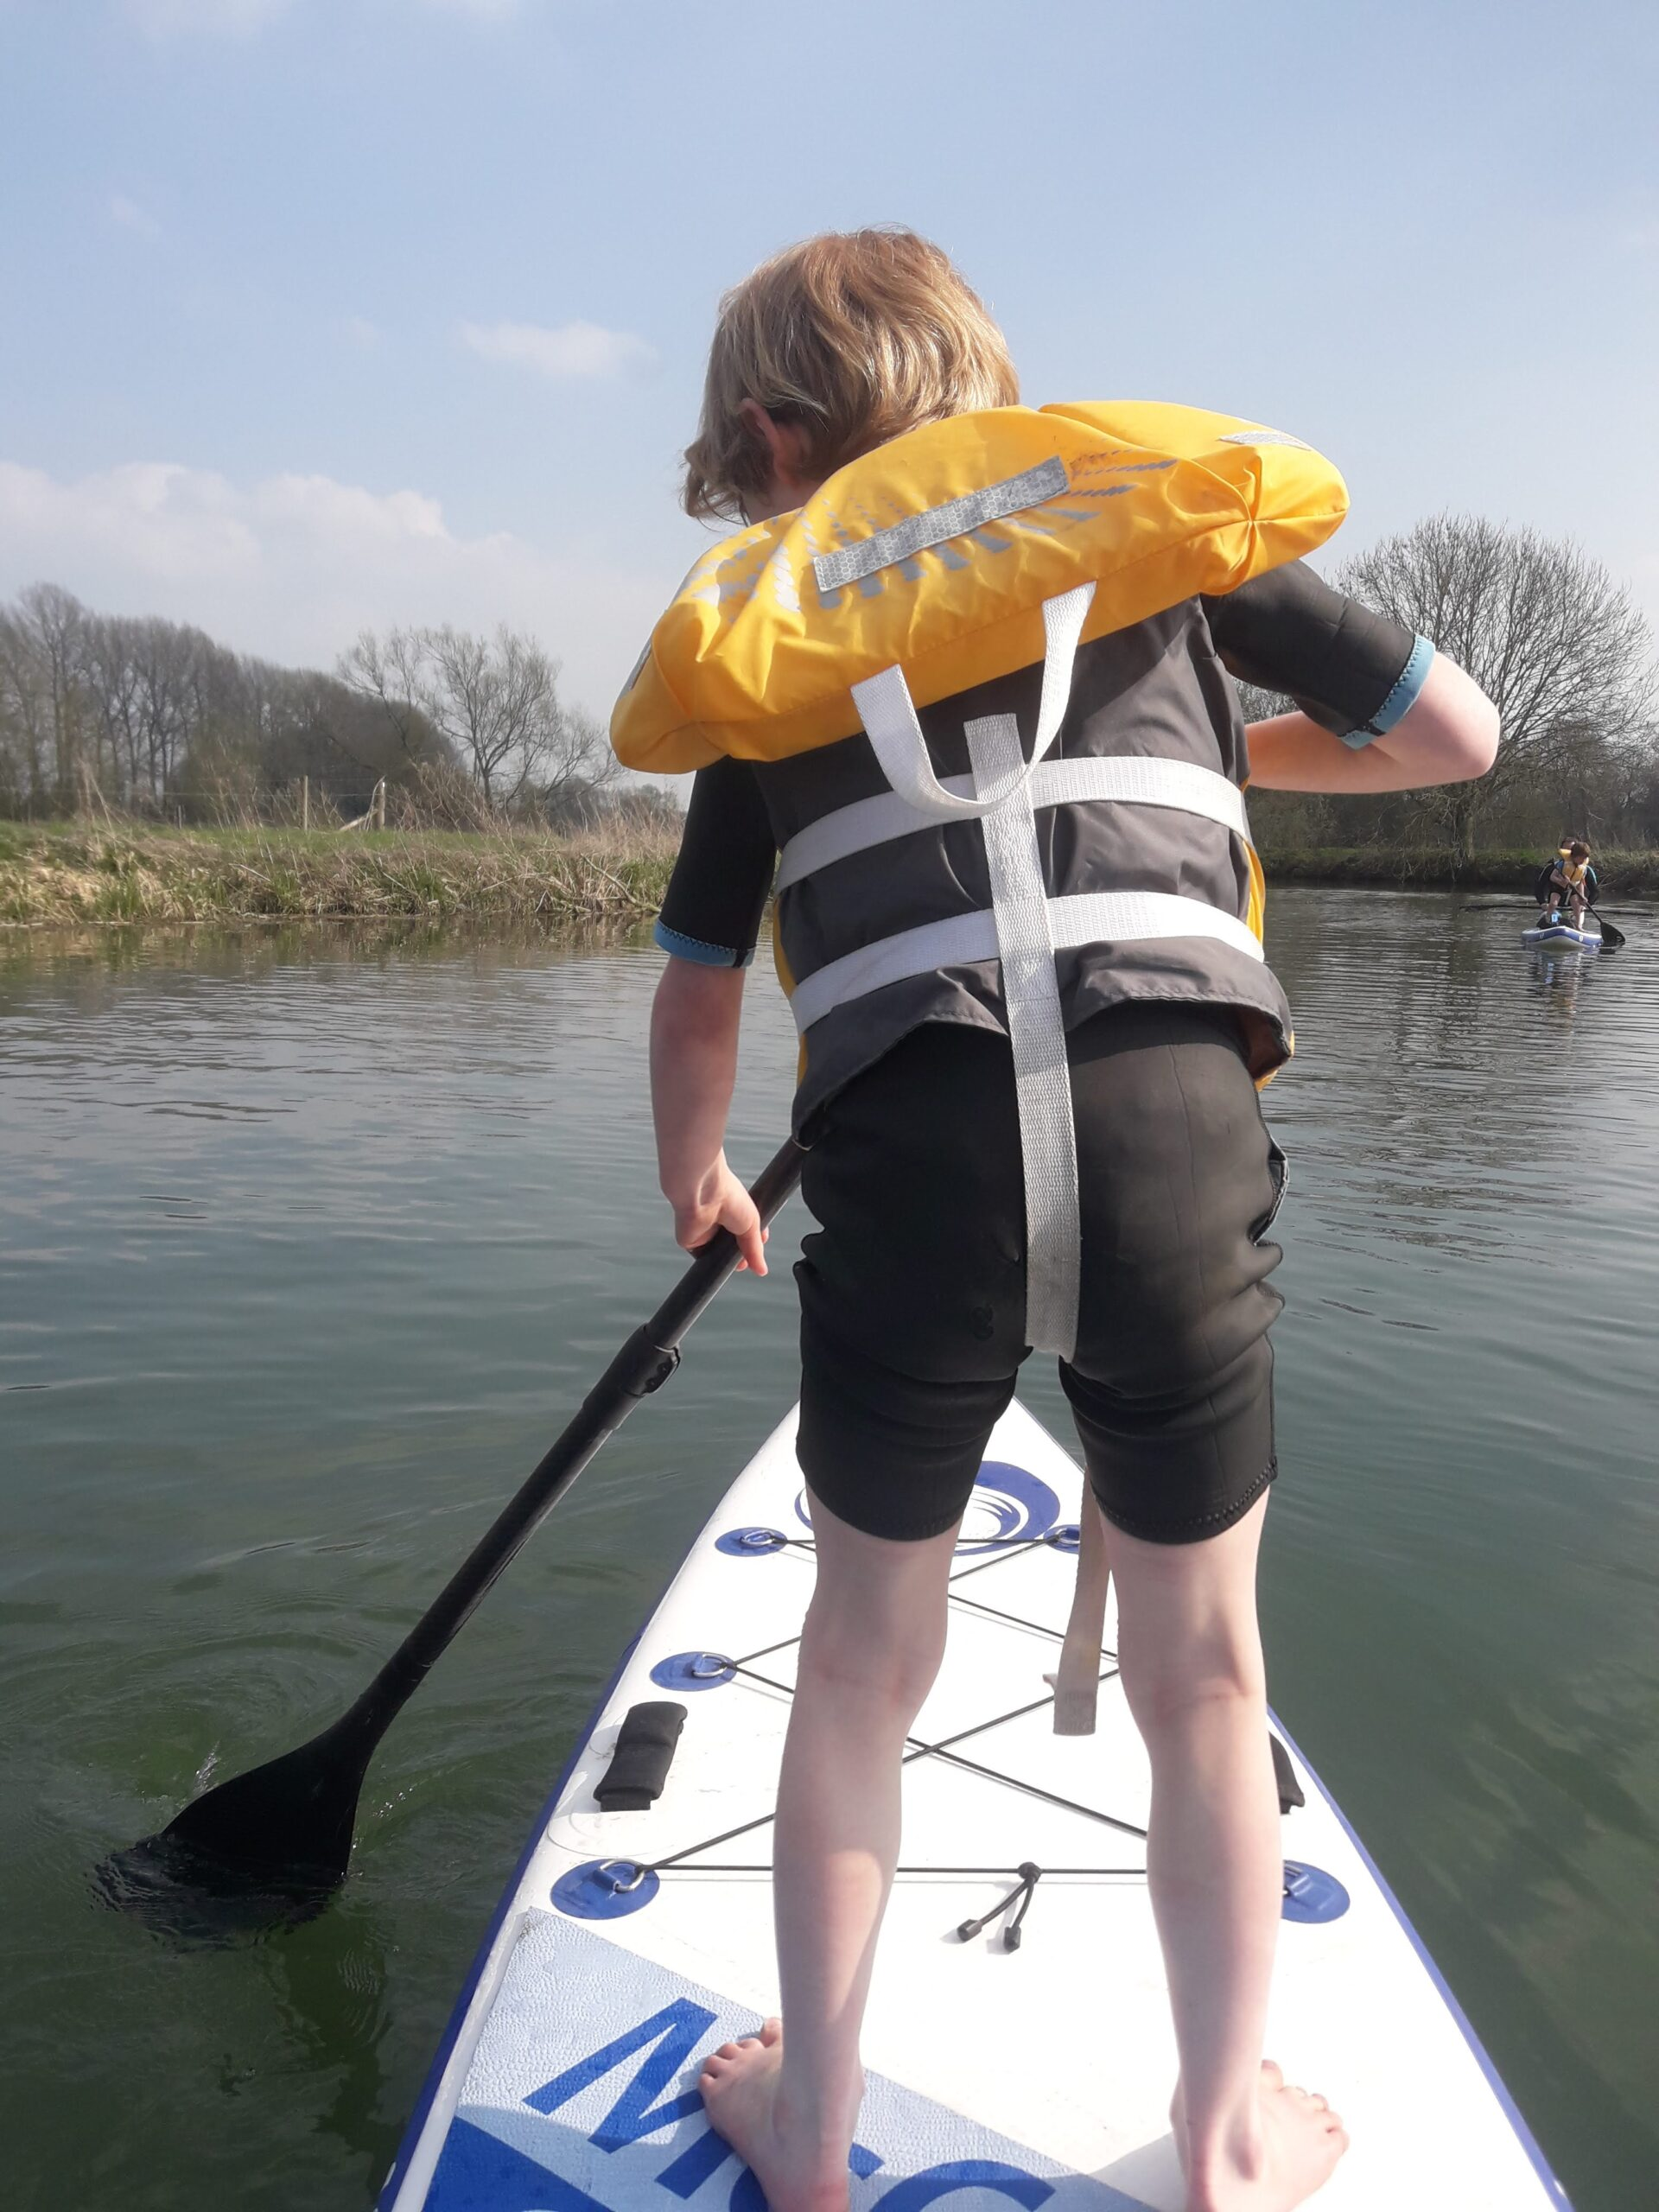 Do I need a kids inflatable paddleboard?